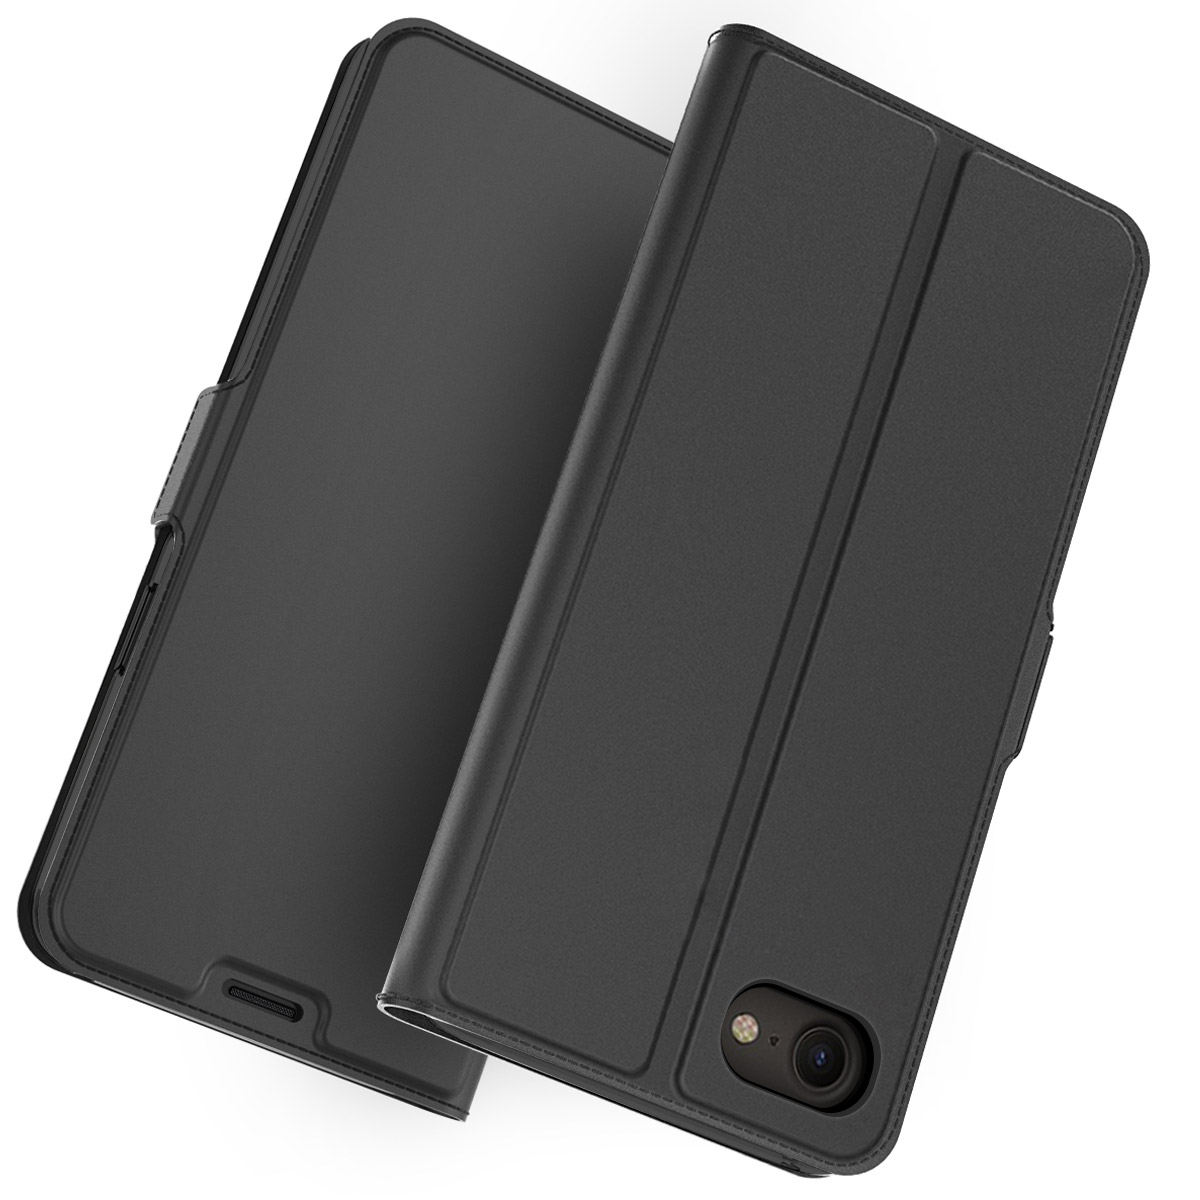 Card Case For 4.7 Iphone SE 2020 Case PU Leather Flip Stand Wallet Full Protective Shockproof Cover For Iphone 11 Pro Max Shell